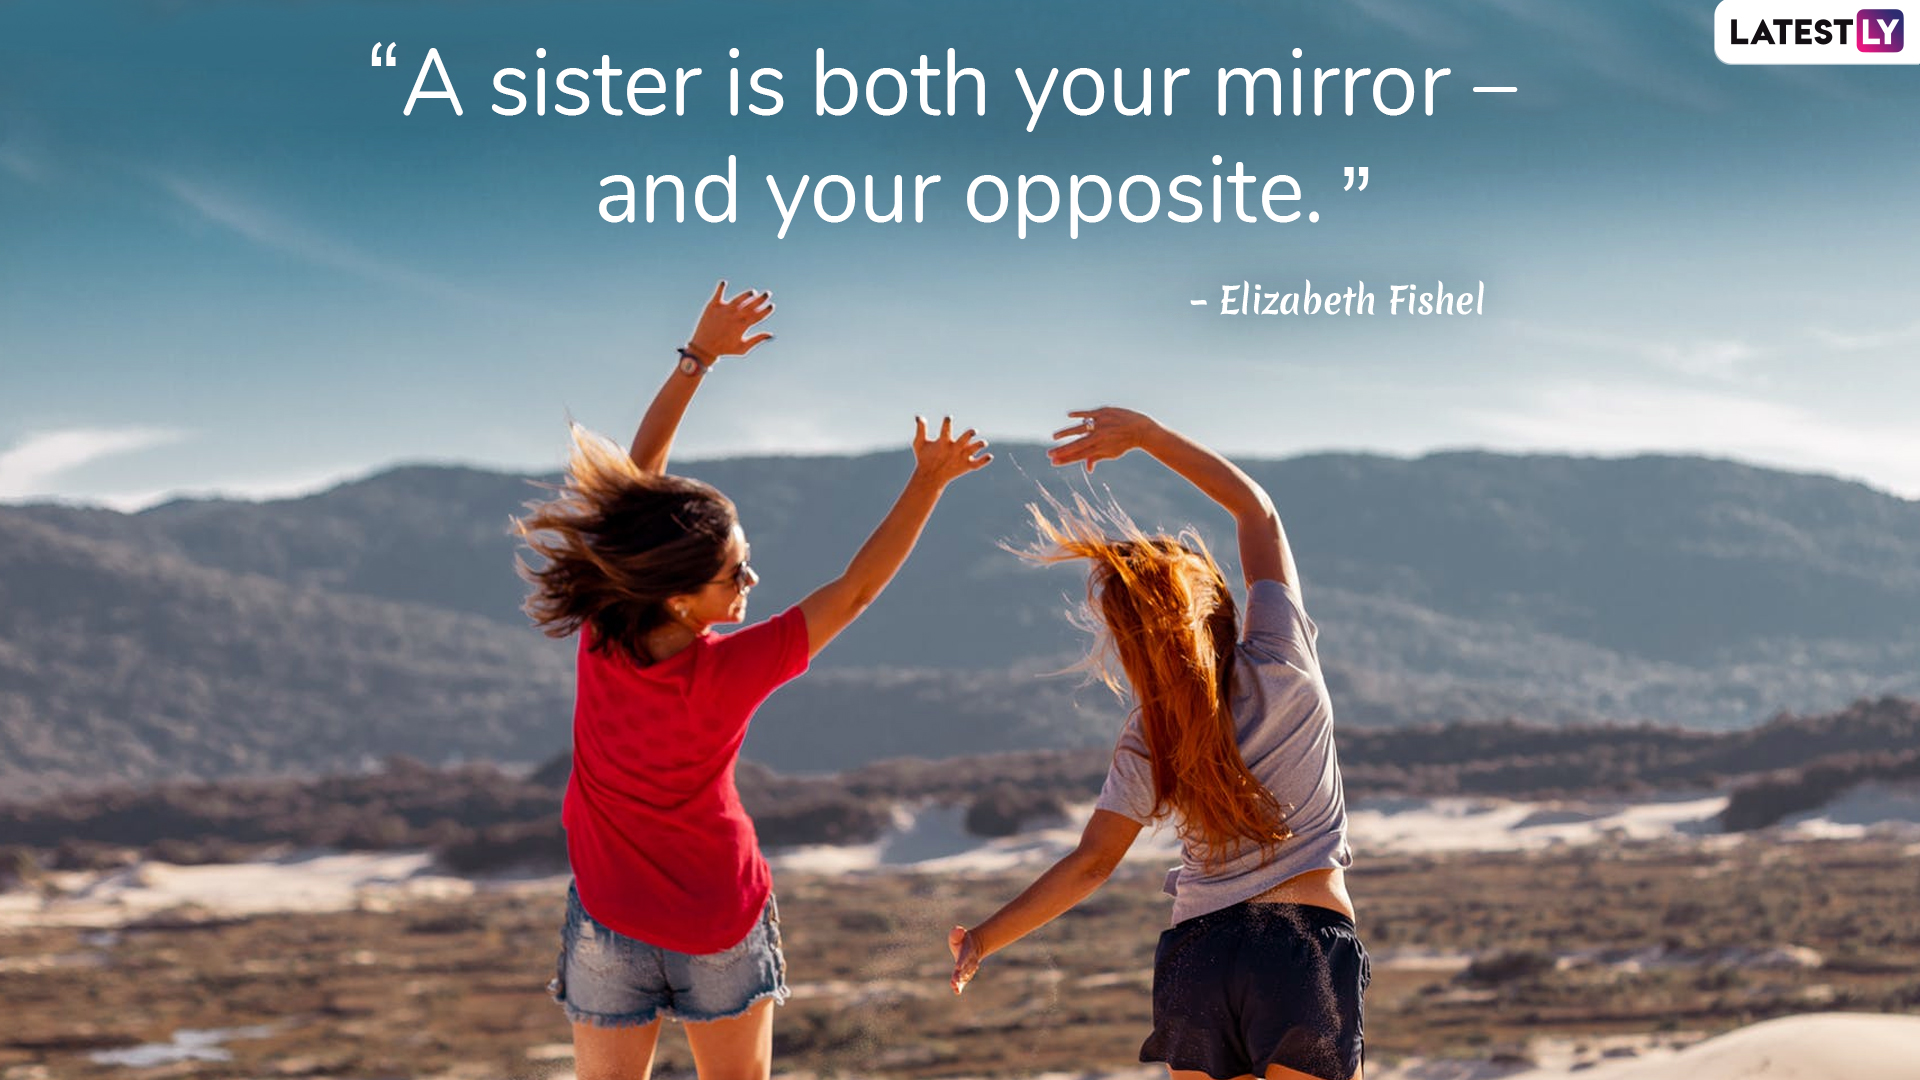 National Sisters Day 2019: Best Quotes and Messages to Share